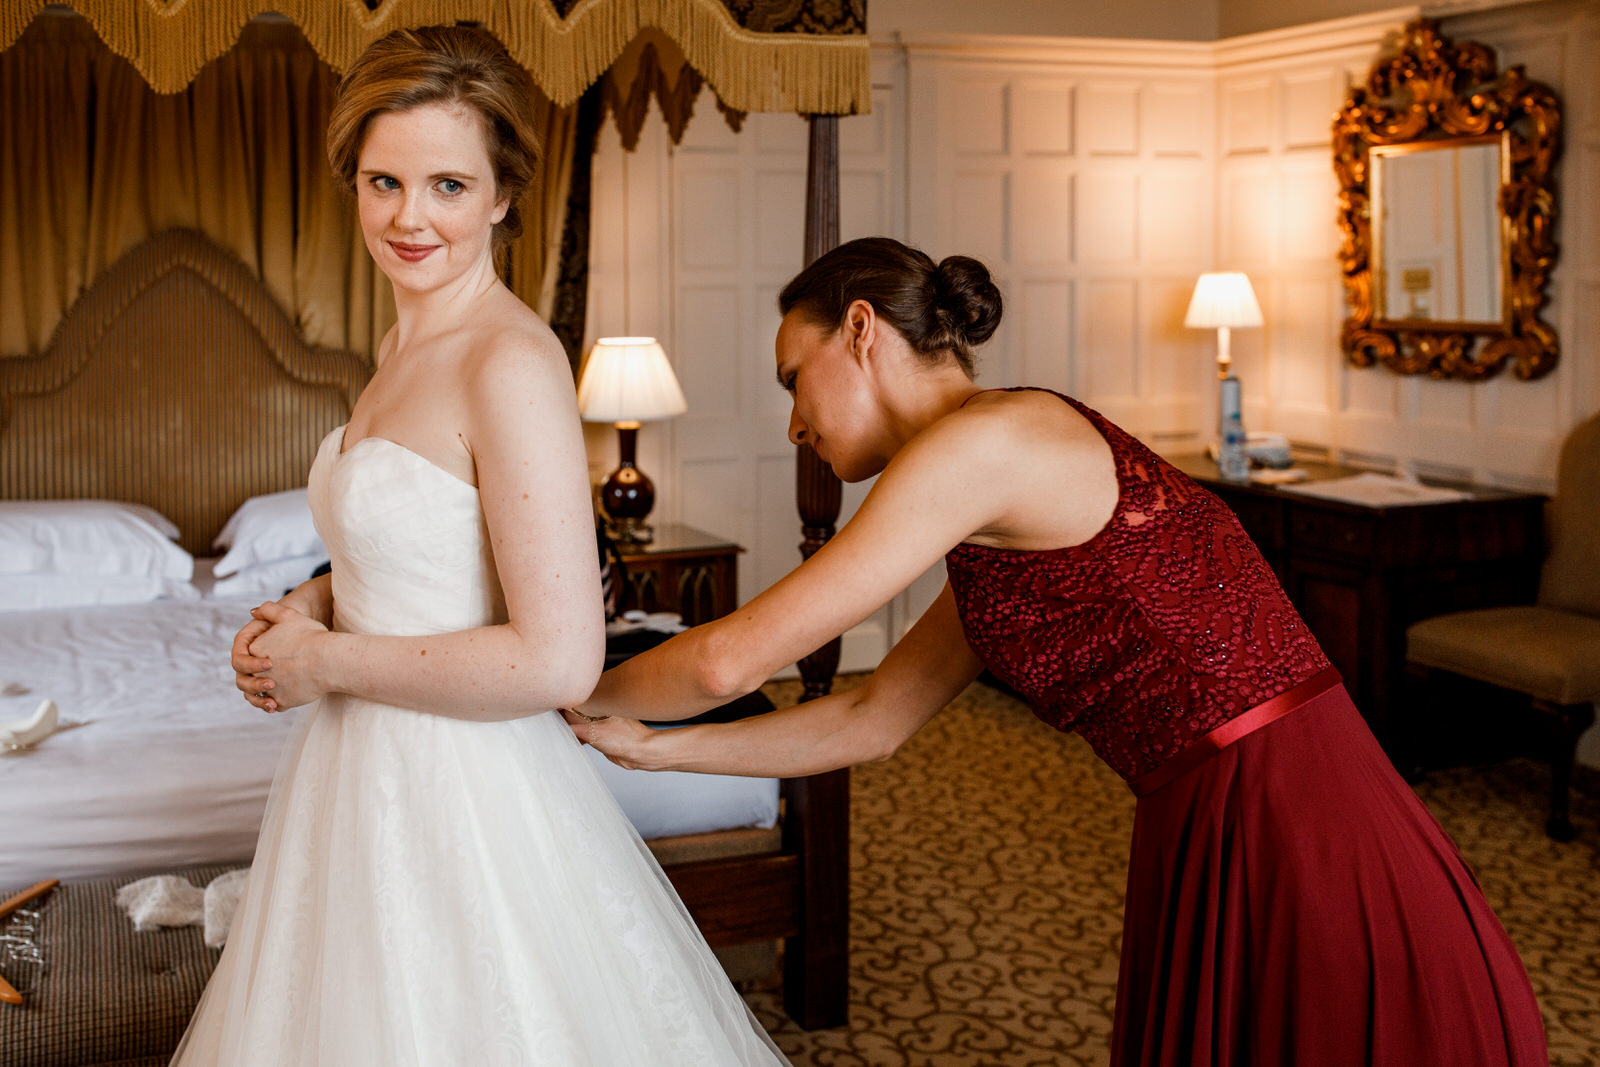 bridesmaid helping bride into her dress